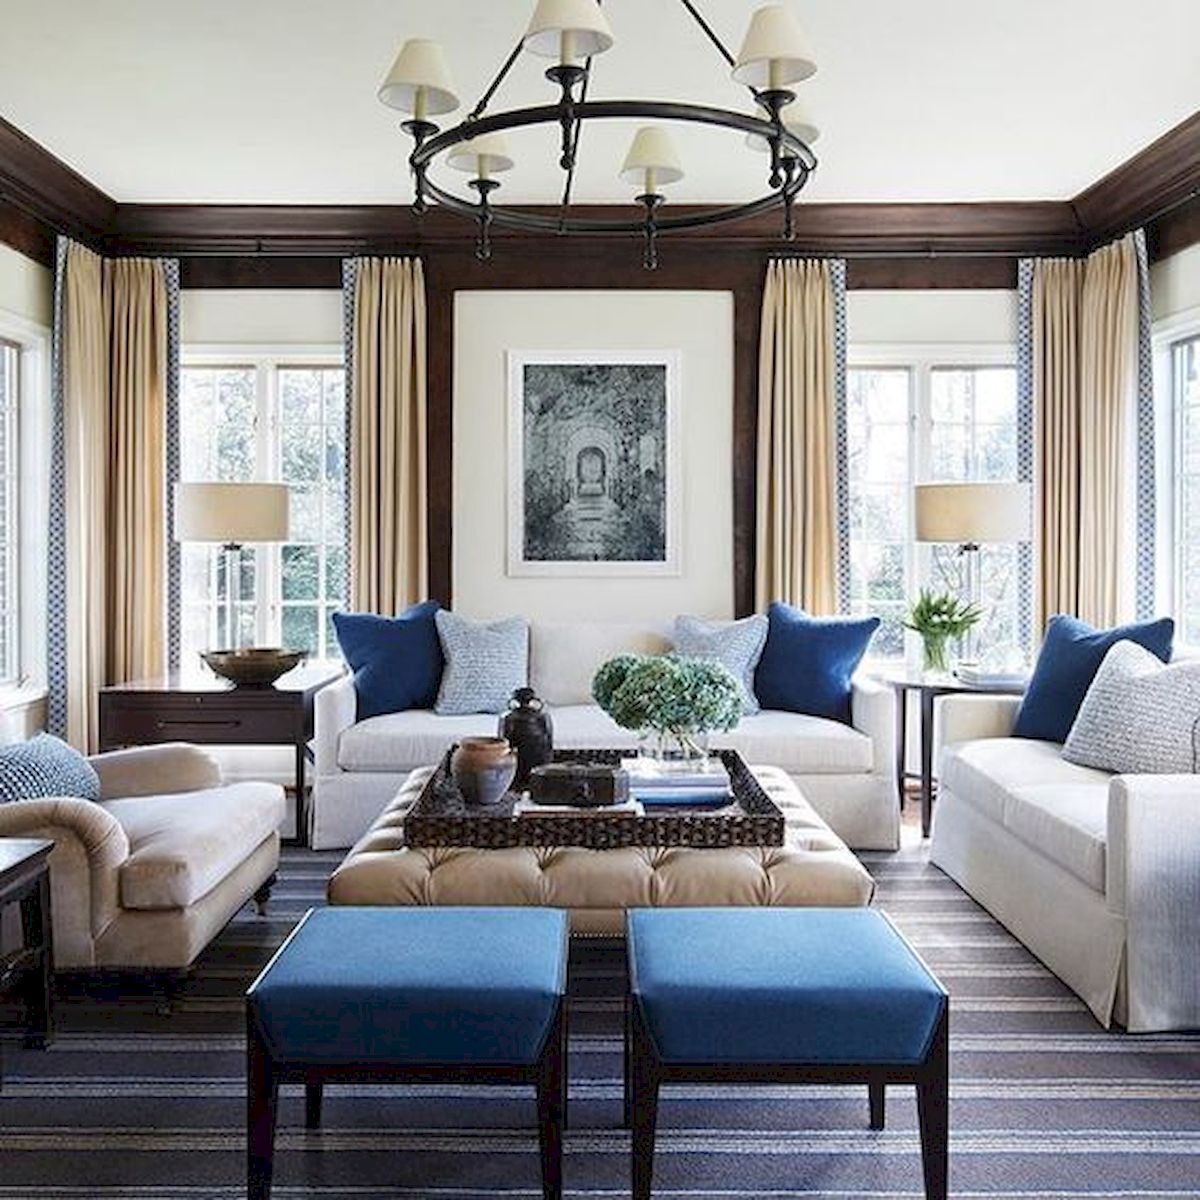 50 Excellent Formal Living Room Decor Ideas And Remodel (2 images